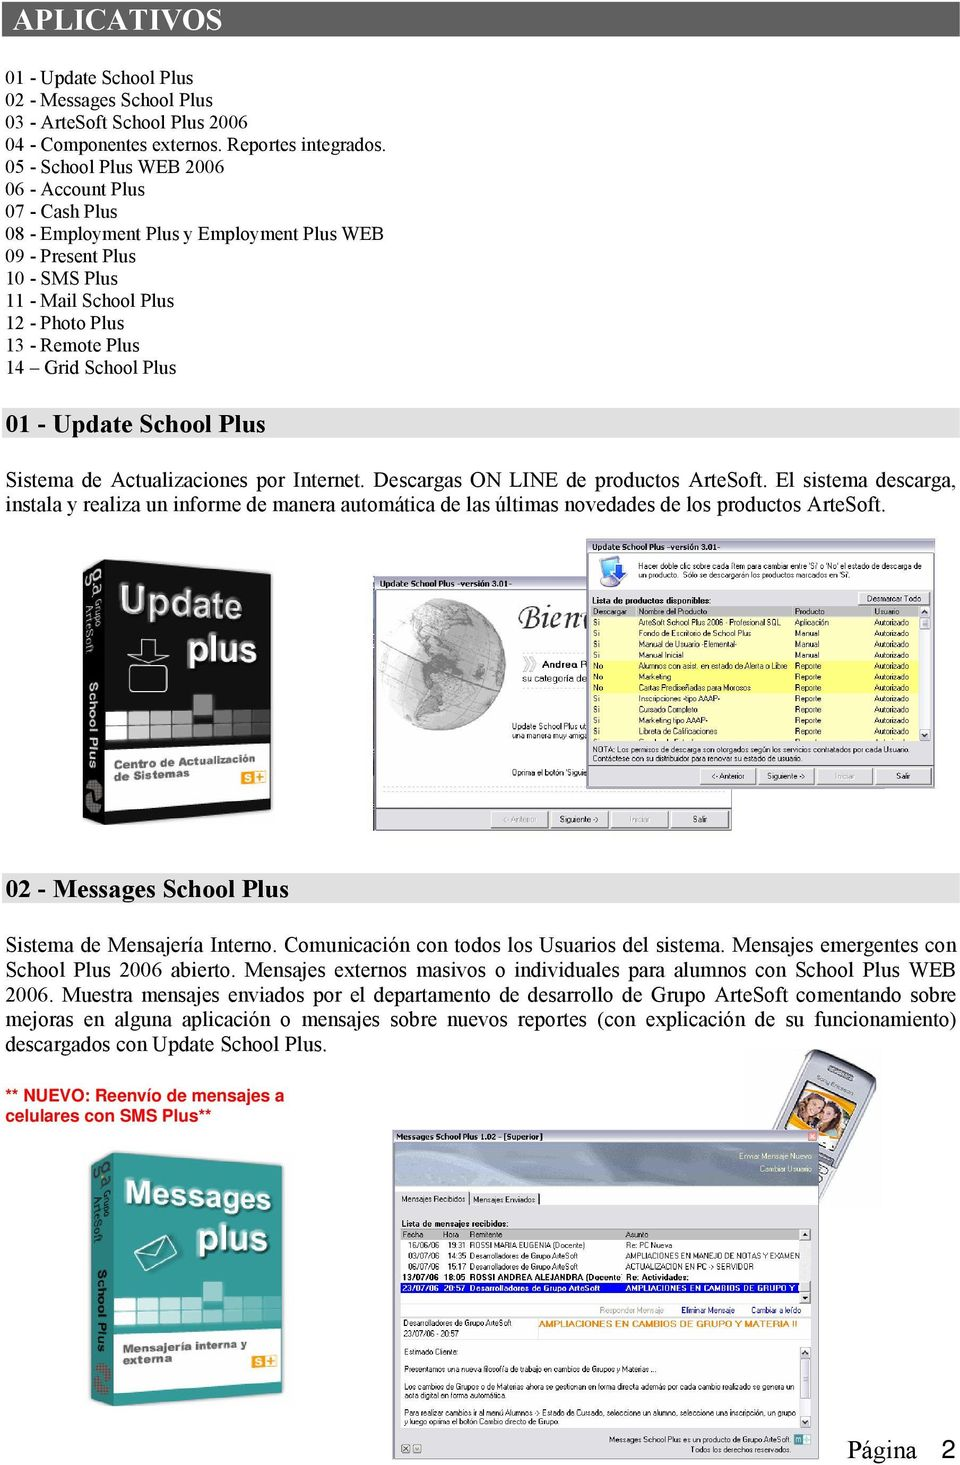 School Plus 01 - Update School Plus Sistema de Actualizaciones por Internet. Descargas ON LINE de productos ArteSoft.